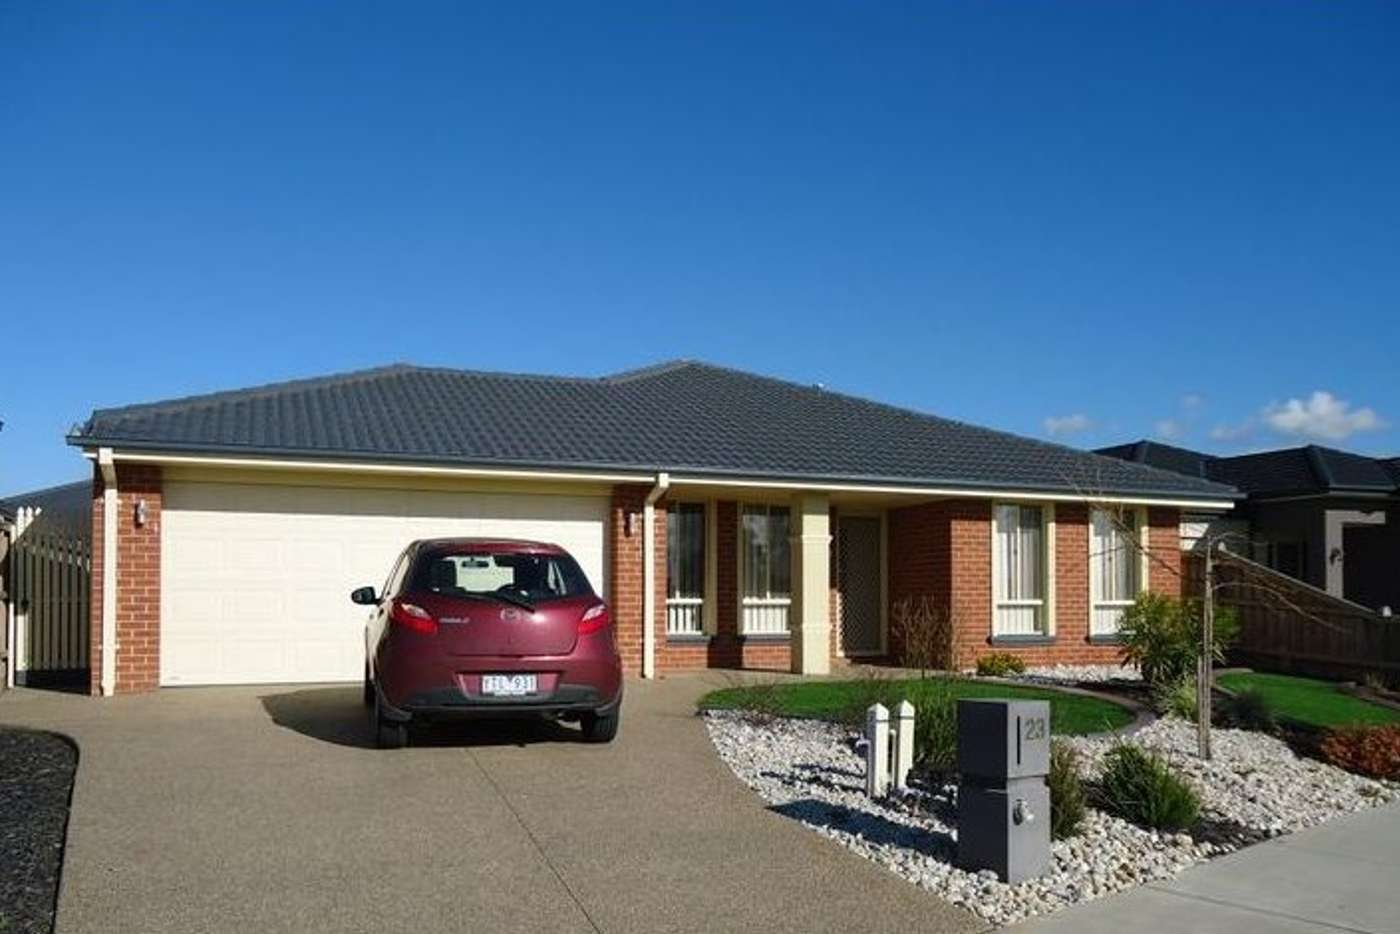 Main view of Homely house listing, 23 Donohue Street, Cranbourne East VIC 3977